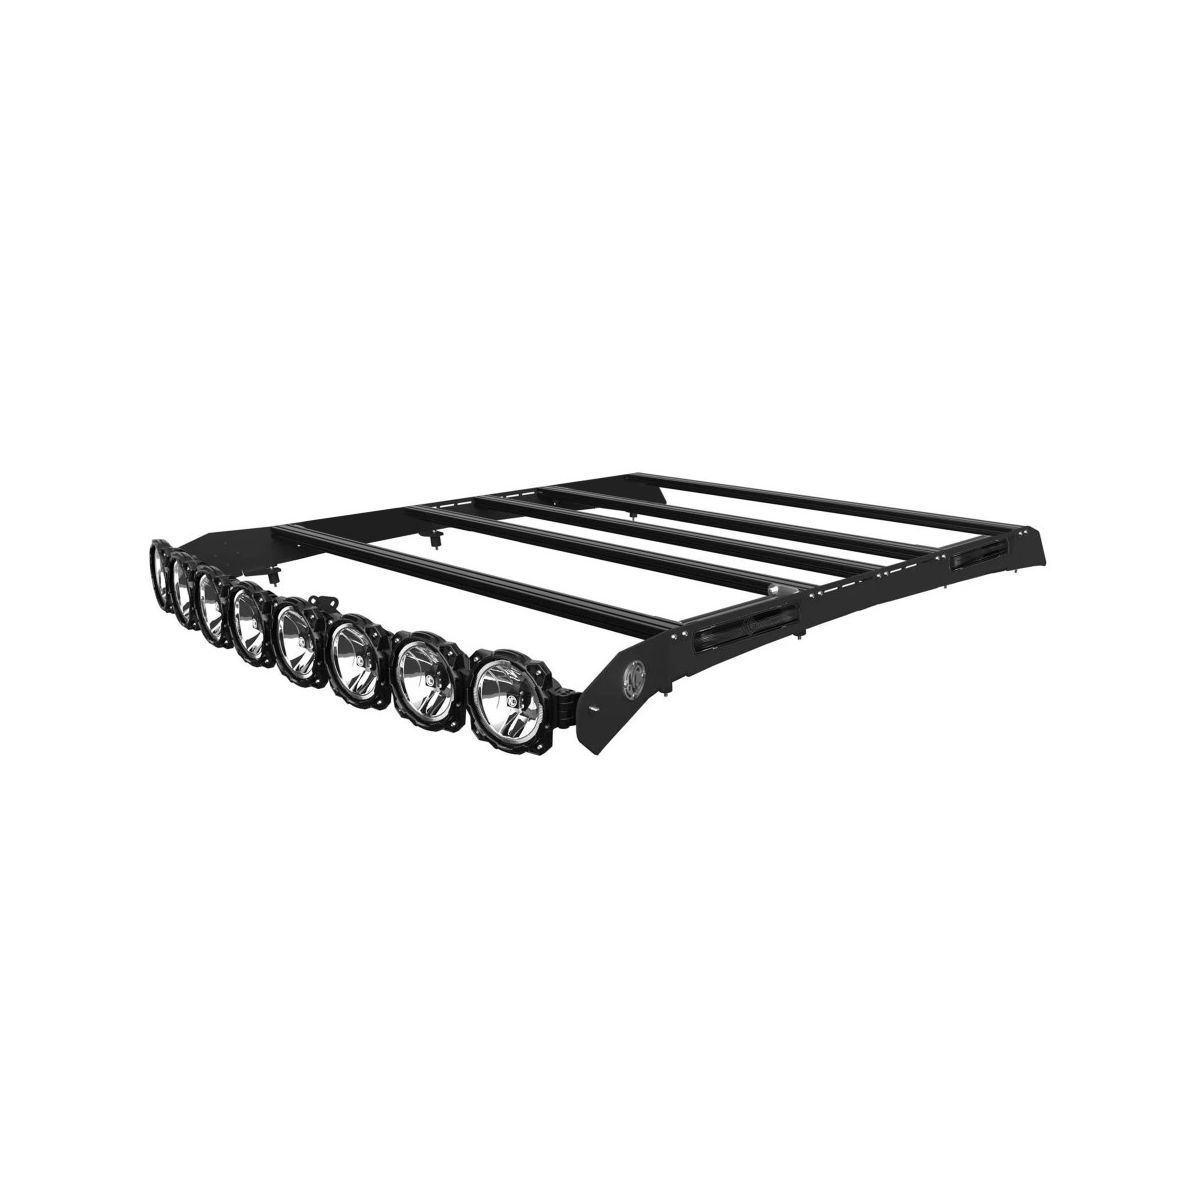 KC HiLiTES M-RACK KIT - 50